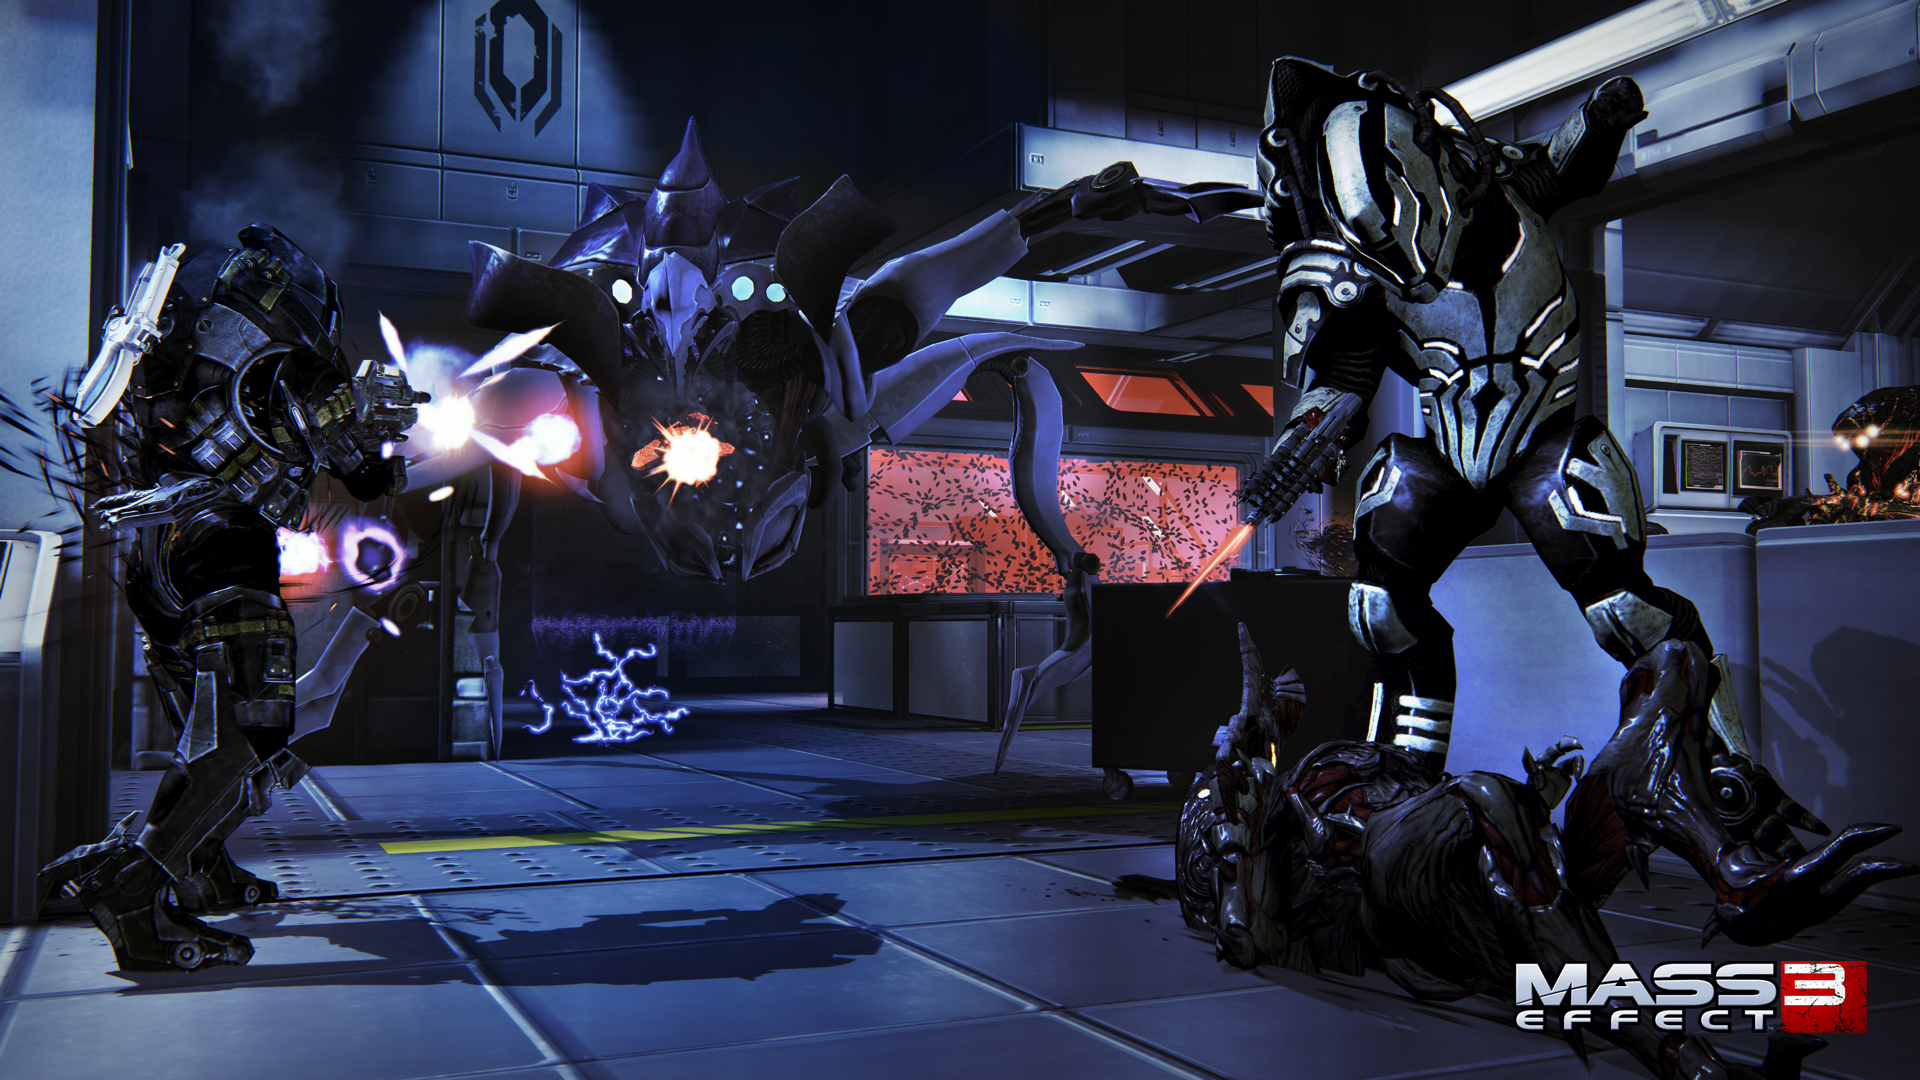 mass effect 3 how to get turians and krogan